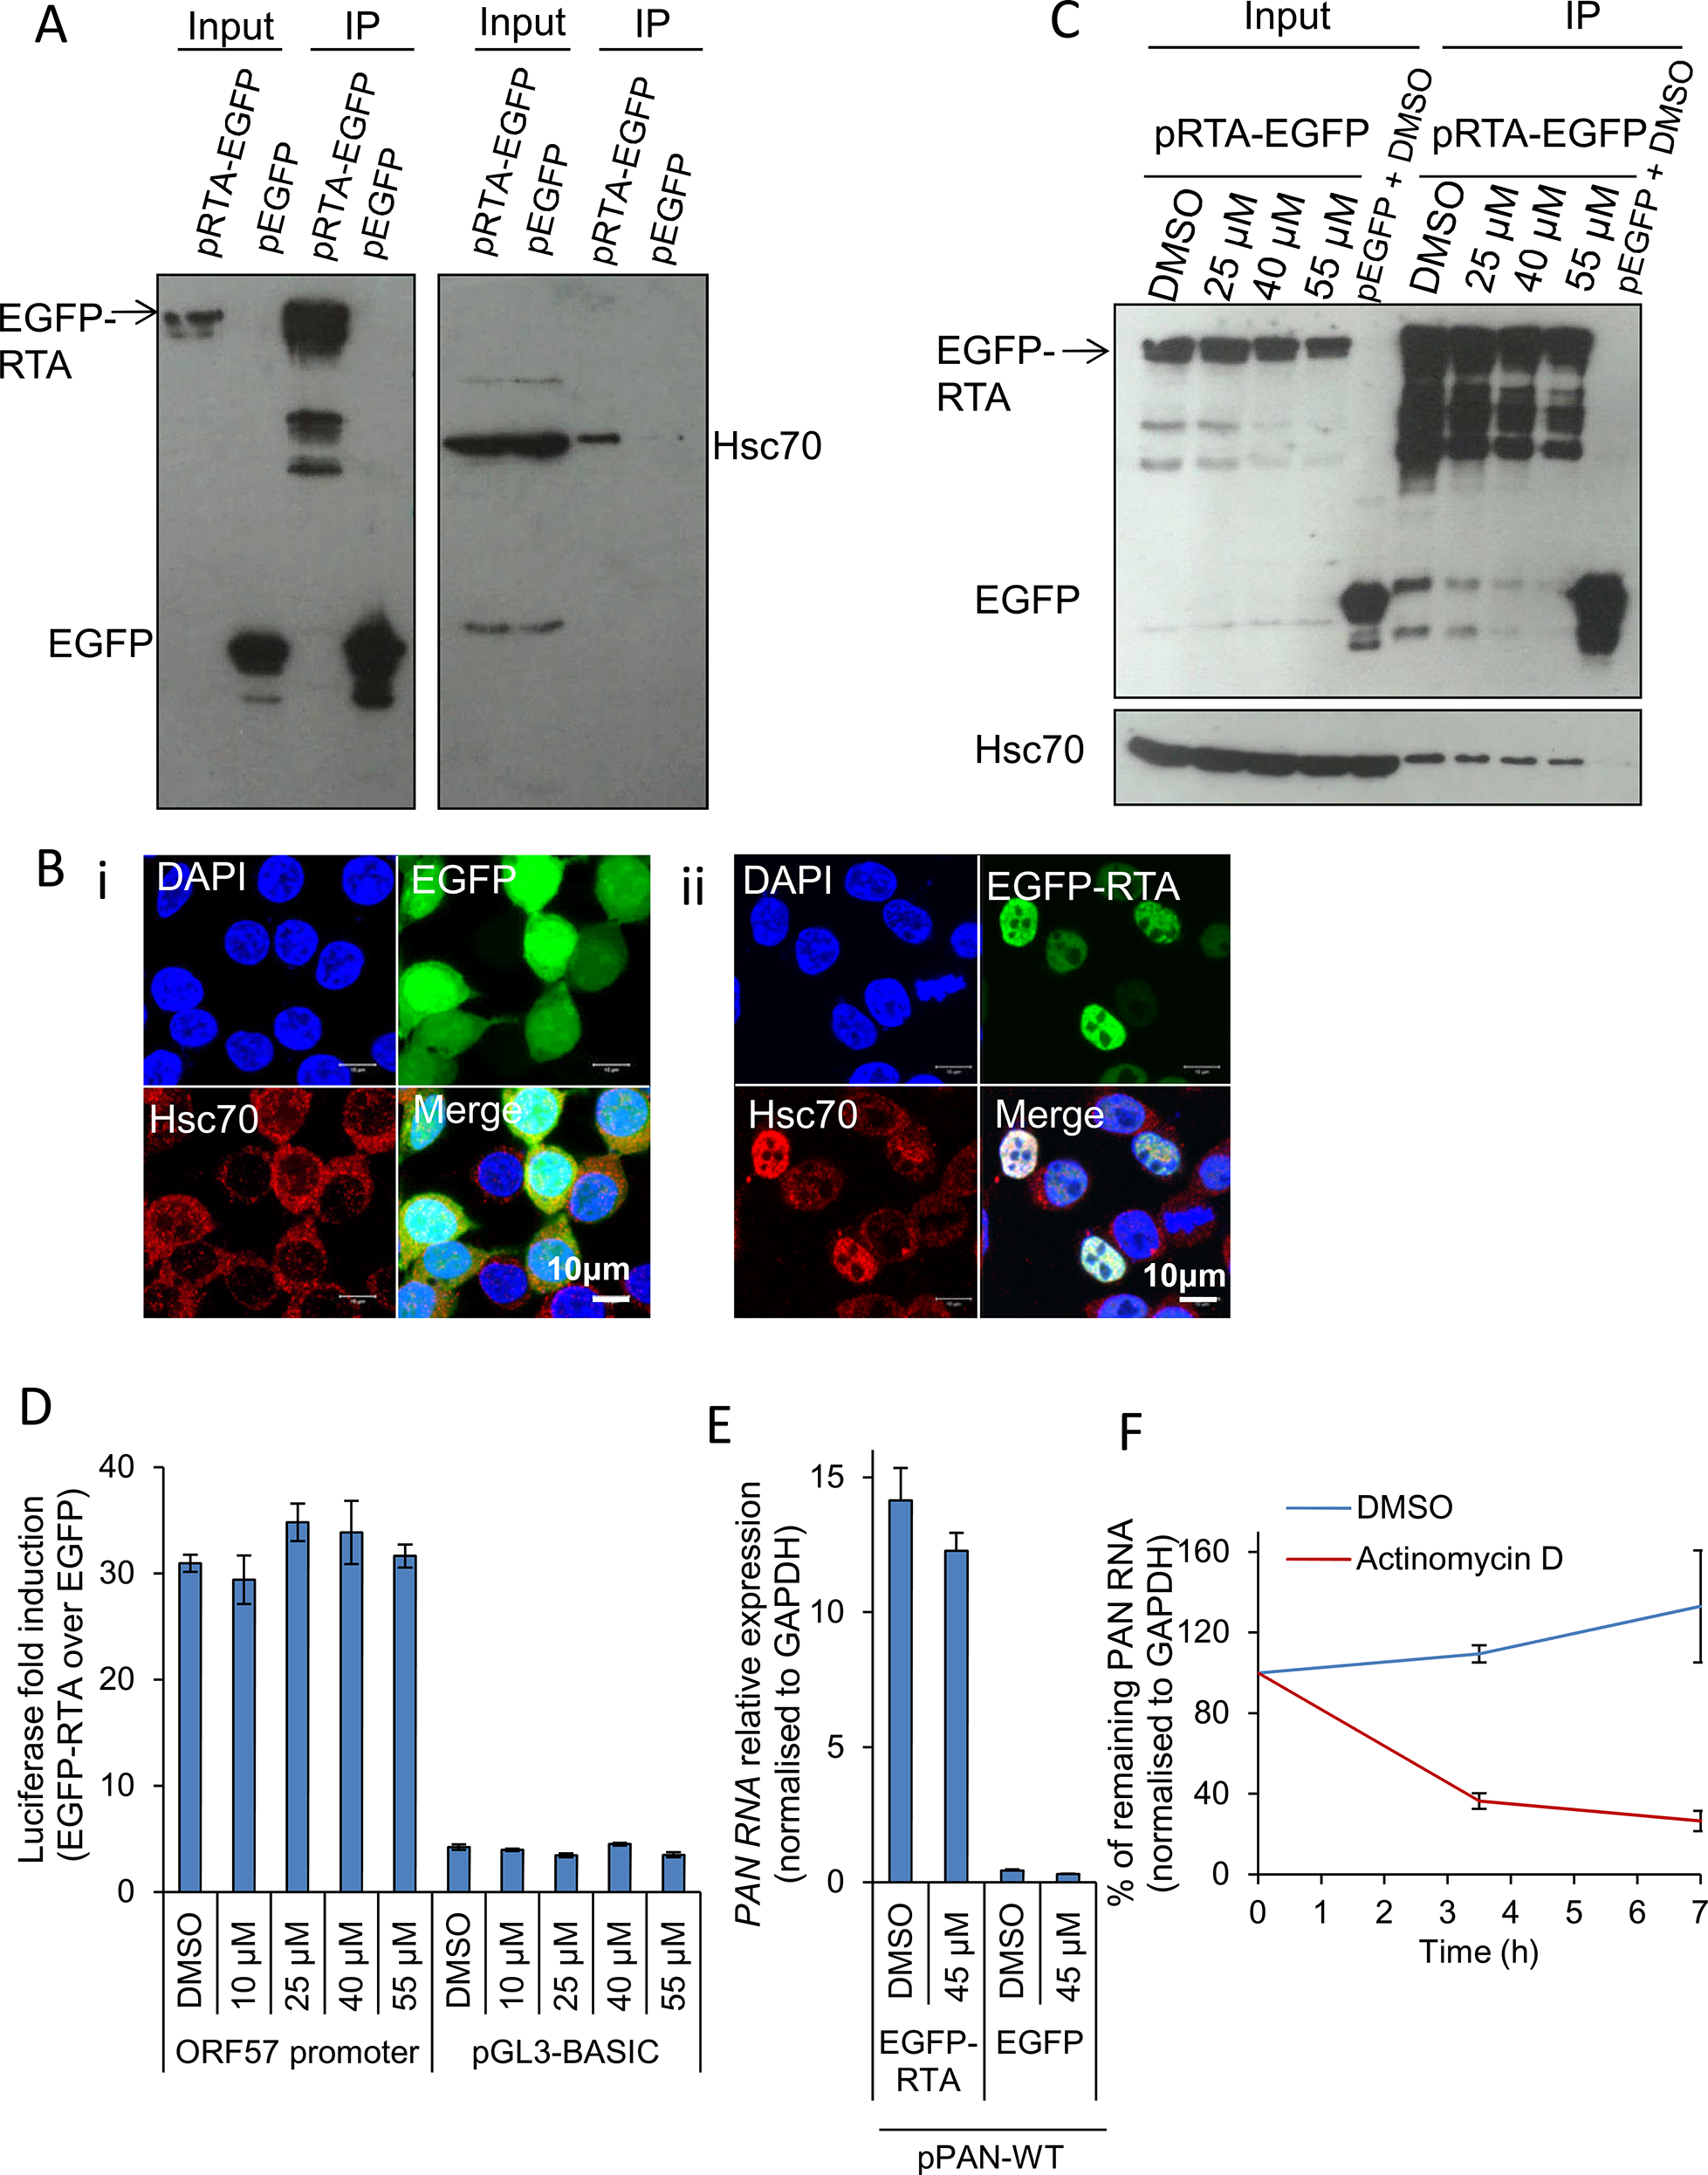 Hsp70 isoforms were not required for RTA-mediated transactivation of KSHV promoters.